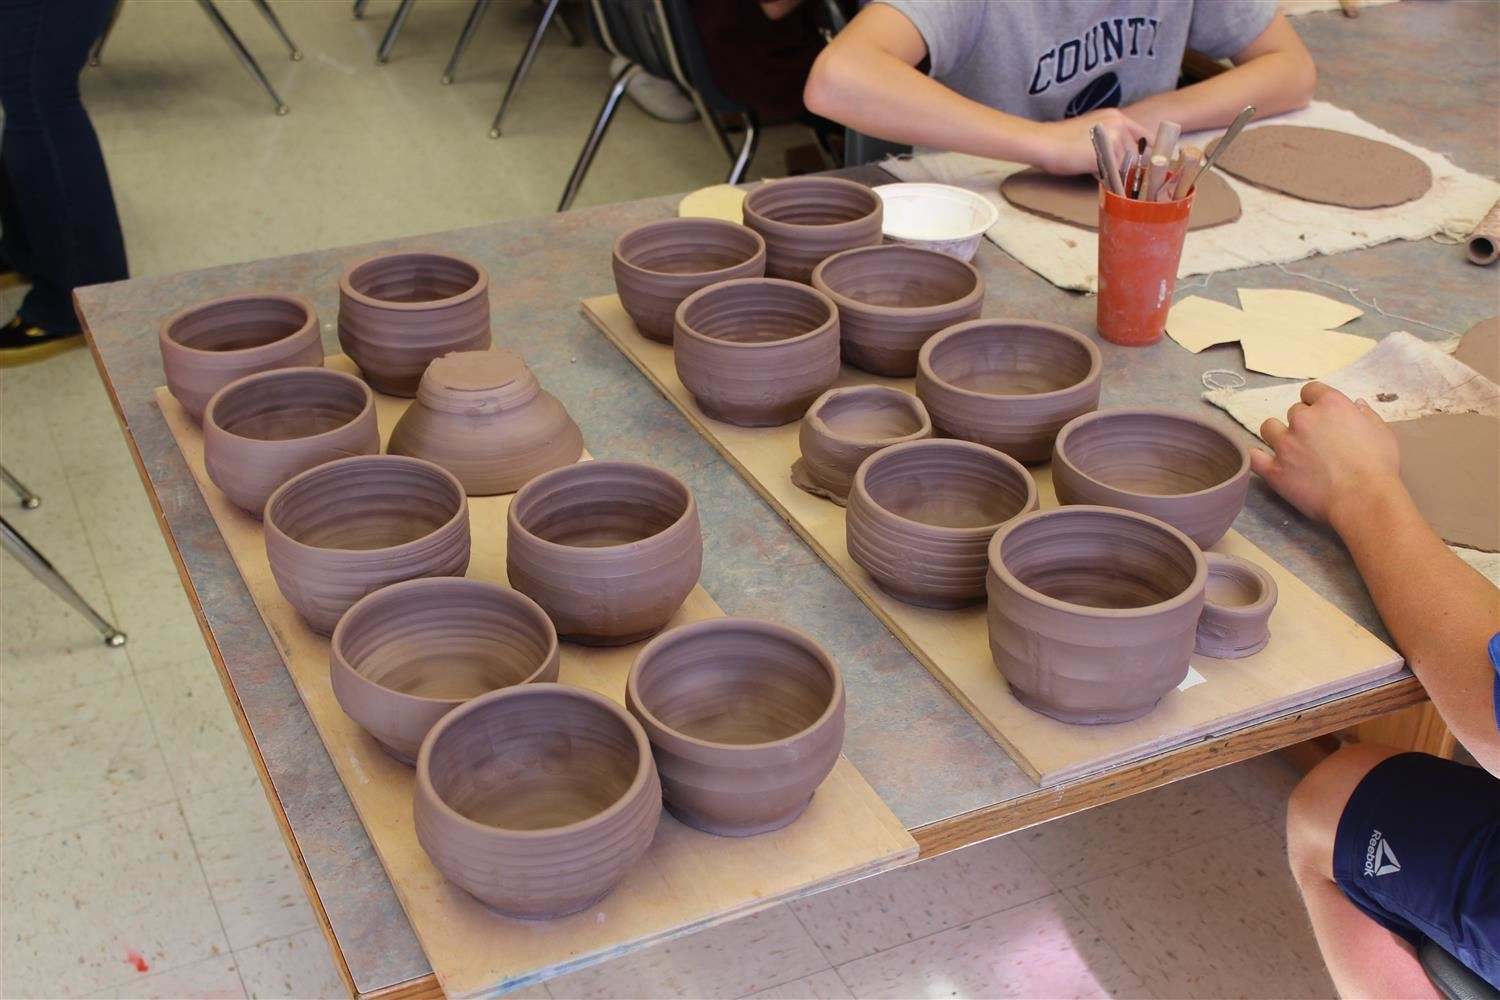 Artists Visit Harmony for Empty Bowl Project